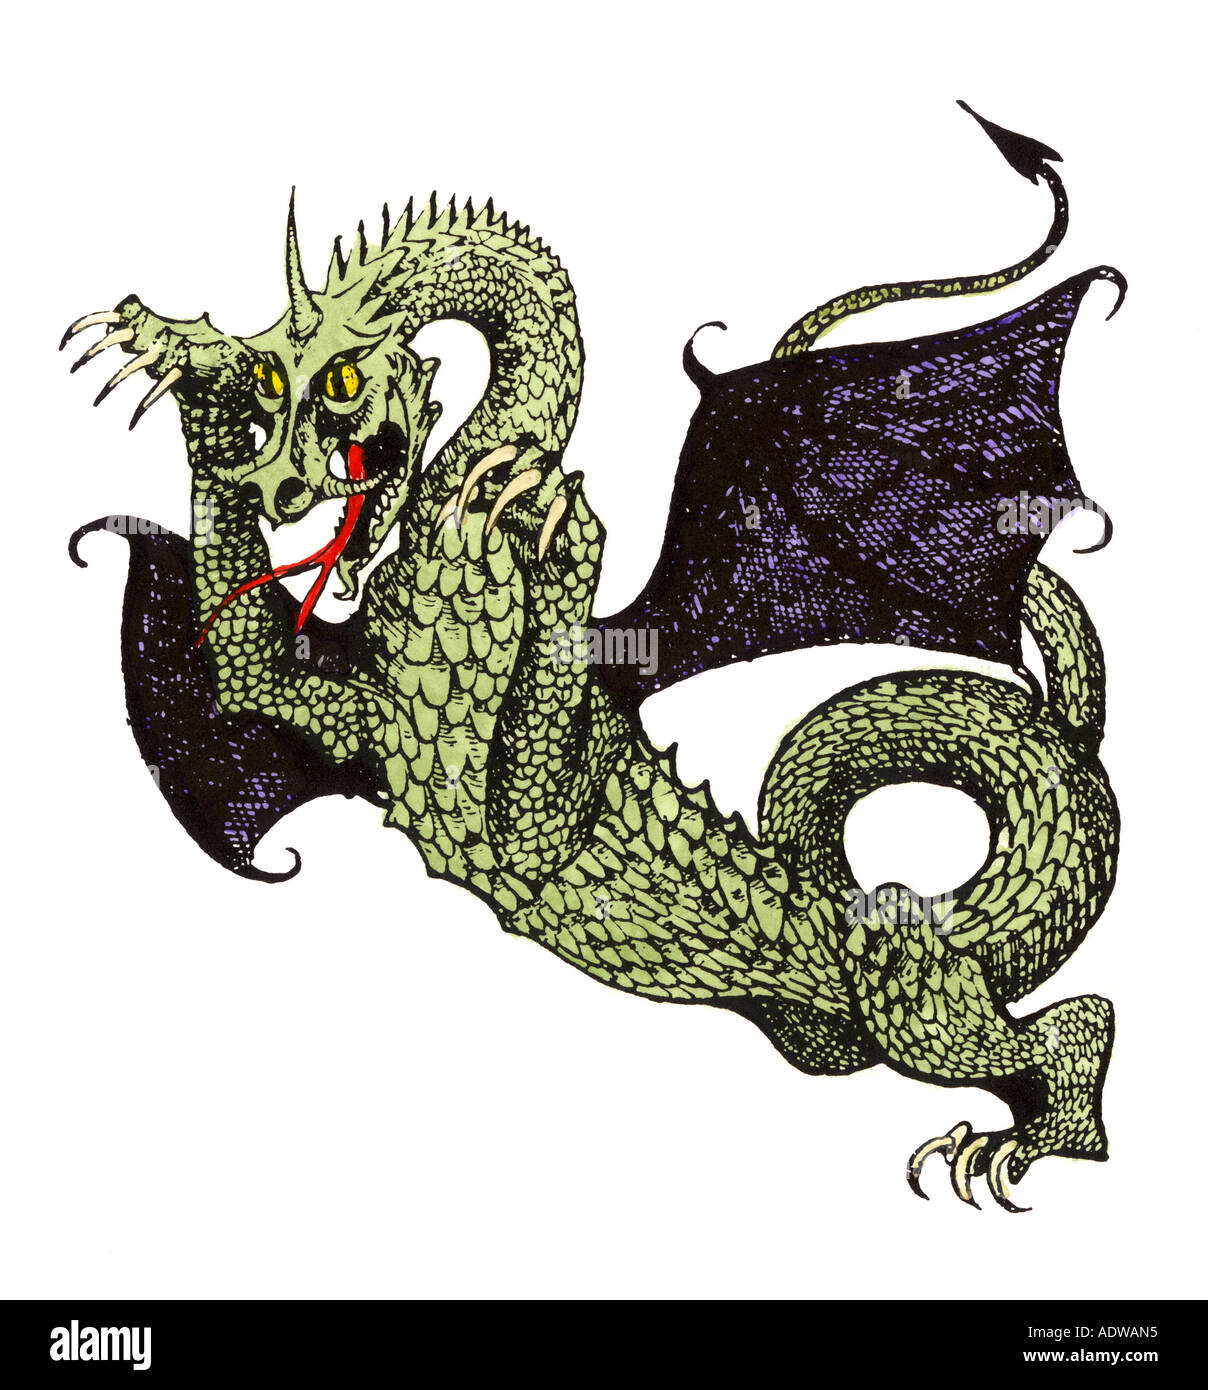 Demonic horned dragon of Hell. Hand-colored woodcut - Stock Image